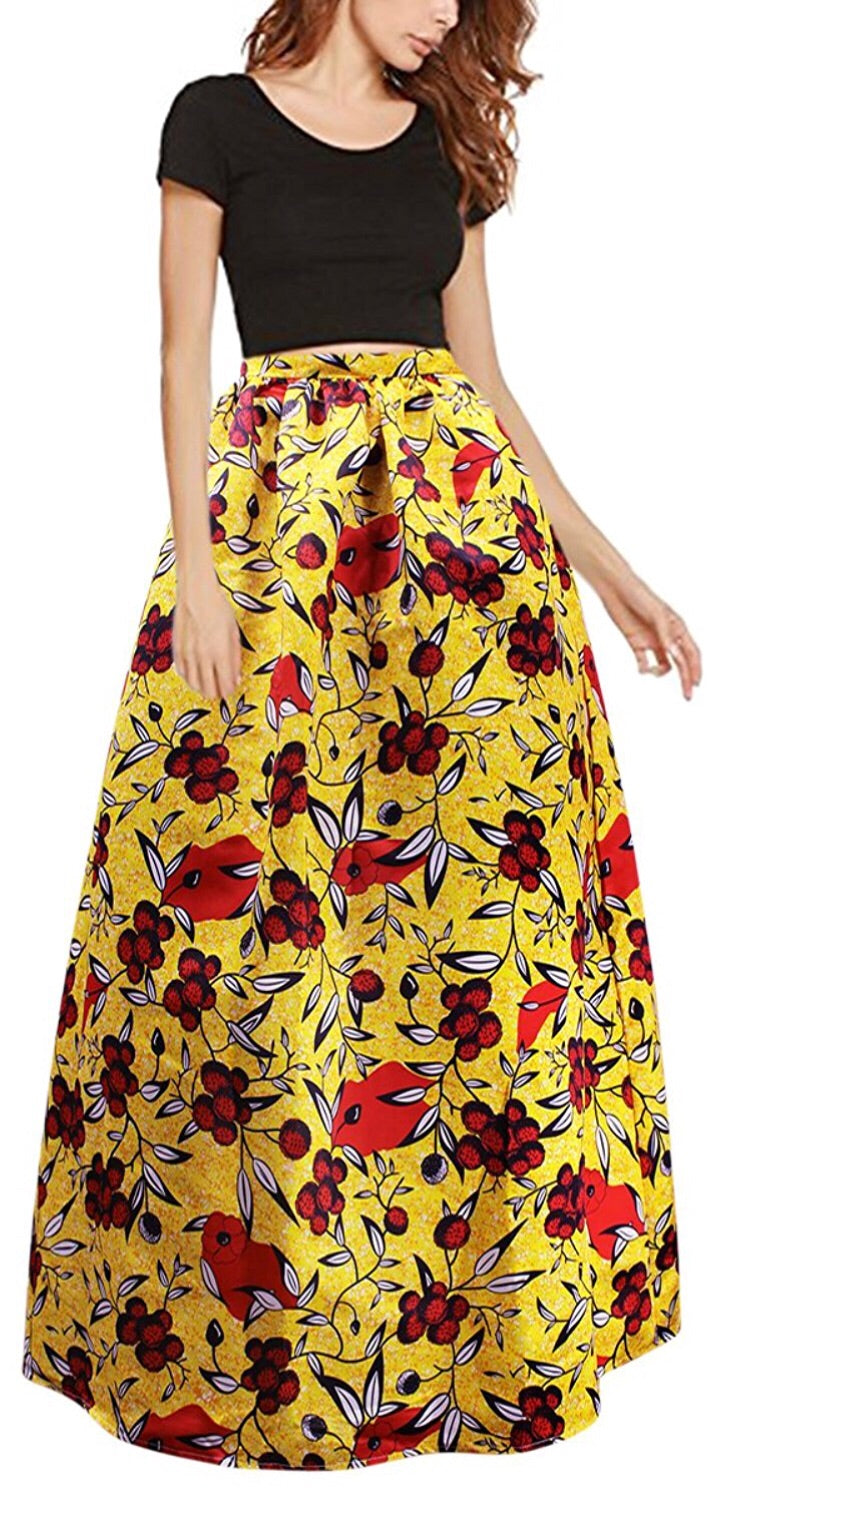 c9de5a356d7b17 High Waist African Print Skirts Images | Huston Fislar Photography